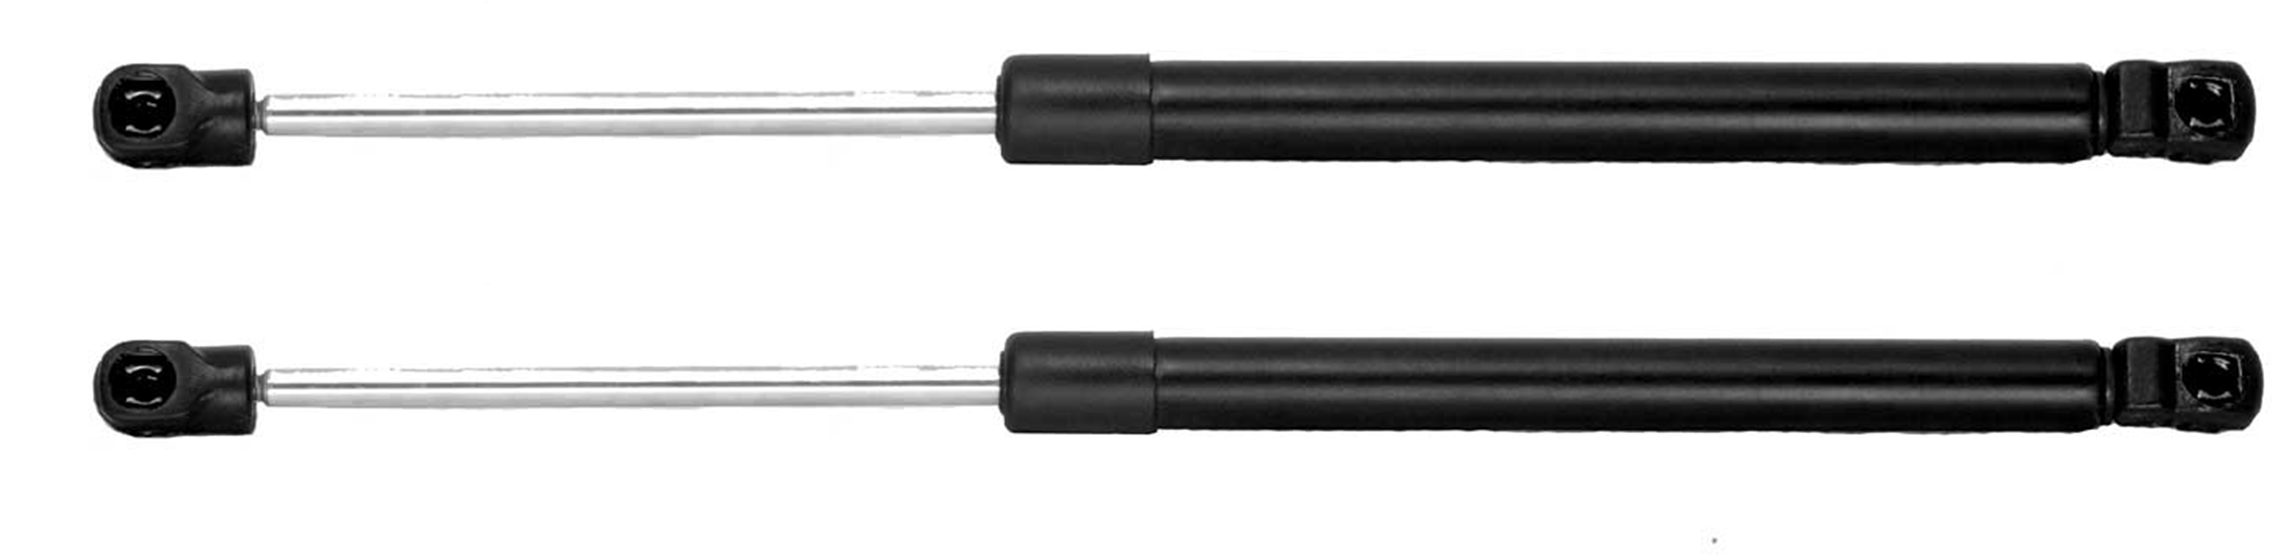 MANTRA DICKY SHOCK ABSORBER- Maruti Wagon R (set of 2 pcs)